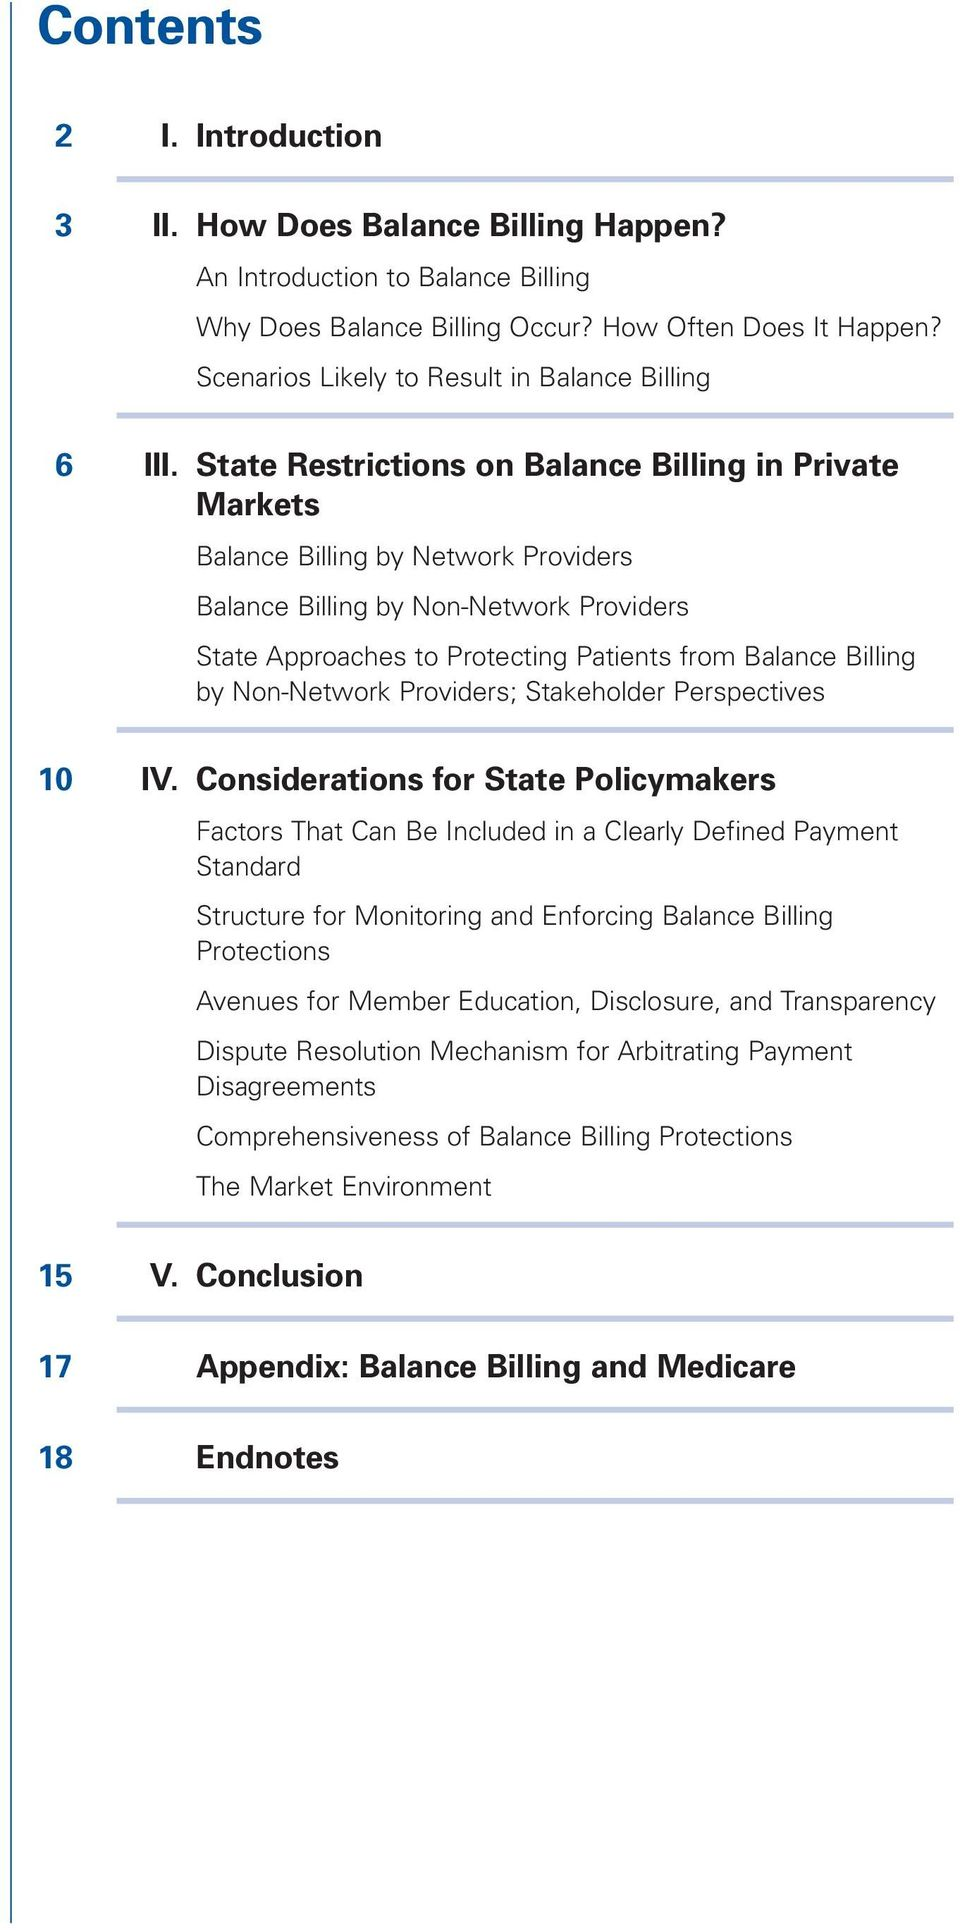 State Restrictions on Balance Billing in Private Markets Balance Billing by Network Providers Balance Billing by Non-Network Providers State Approaches to Protecting Patients from Balance Billing by